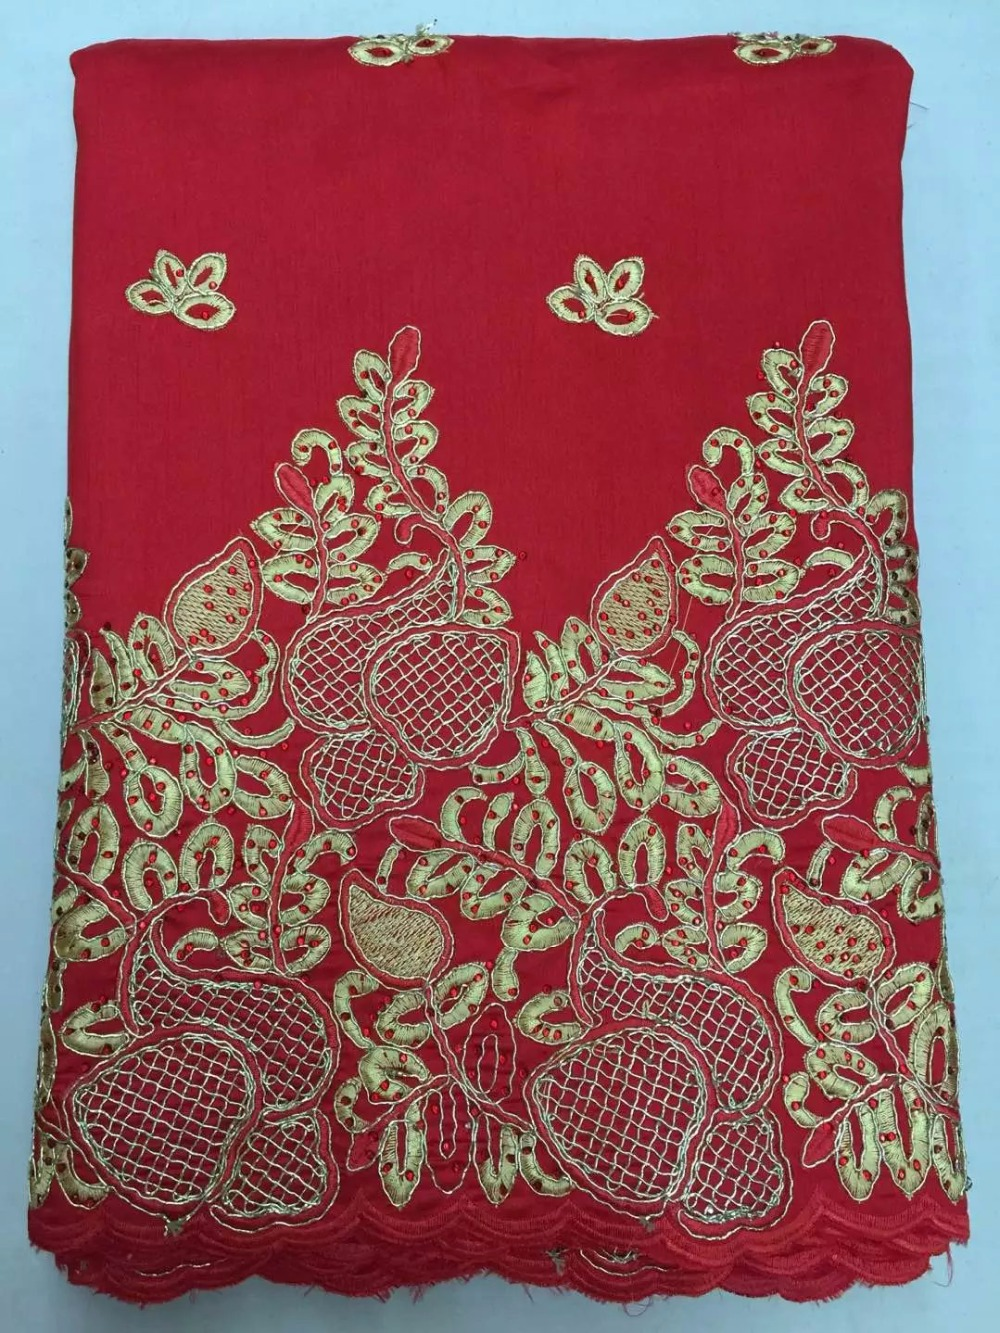 Worksheet 5 Yards Of Fabric online get cheap lace fabric yard aliexpress com alibaba group latest popular designs red stone 5 yards af